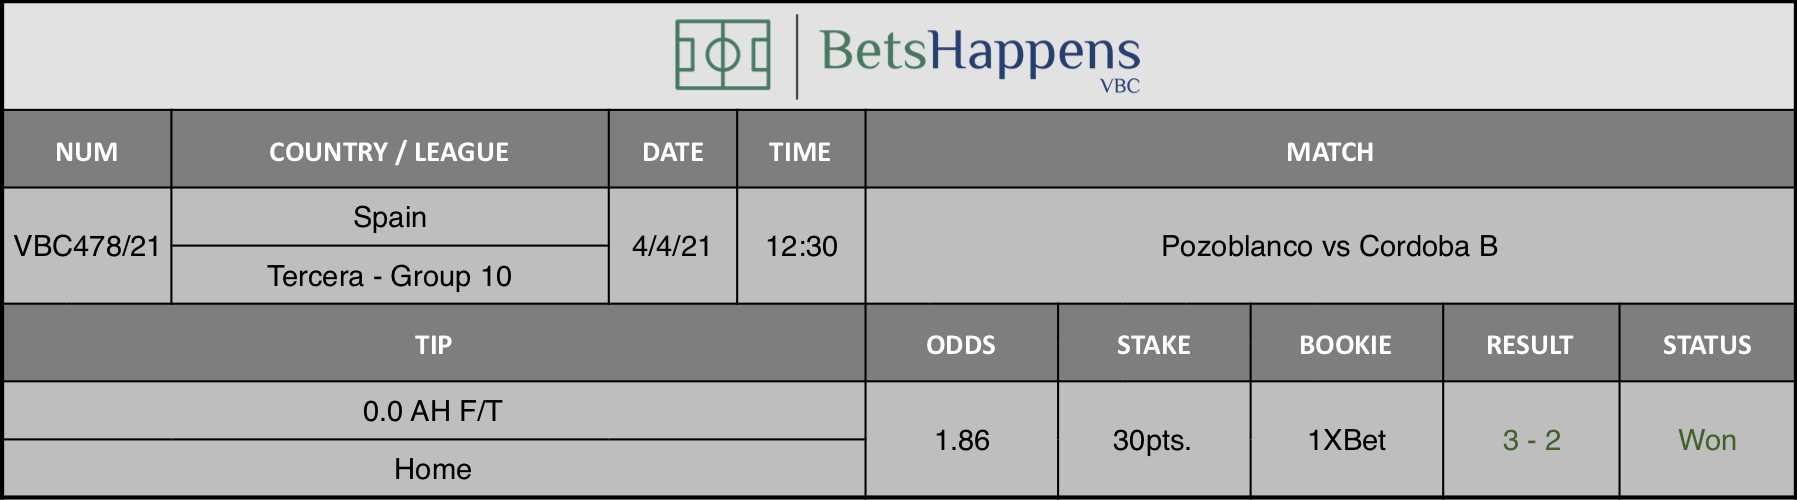 Results of our tip for the Pozoblanco vs Cordoba B match where 0,0 AH F/T  Home is recommended.